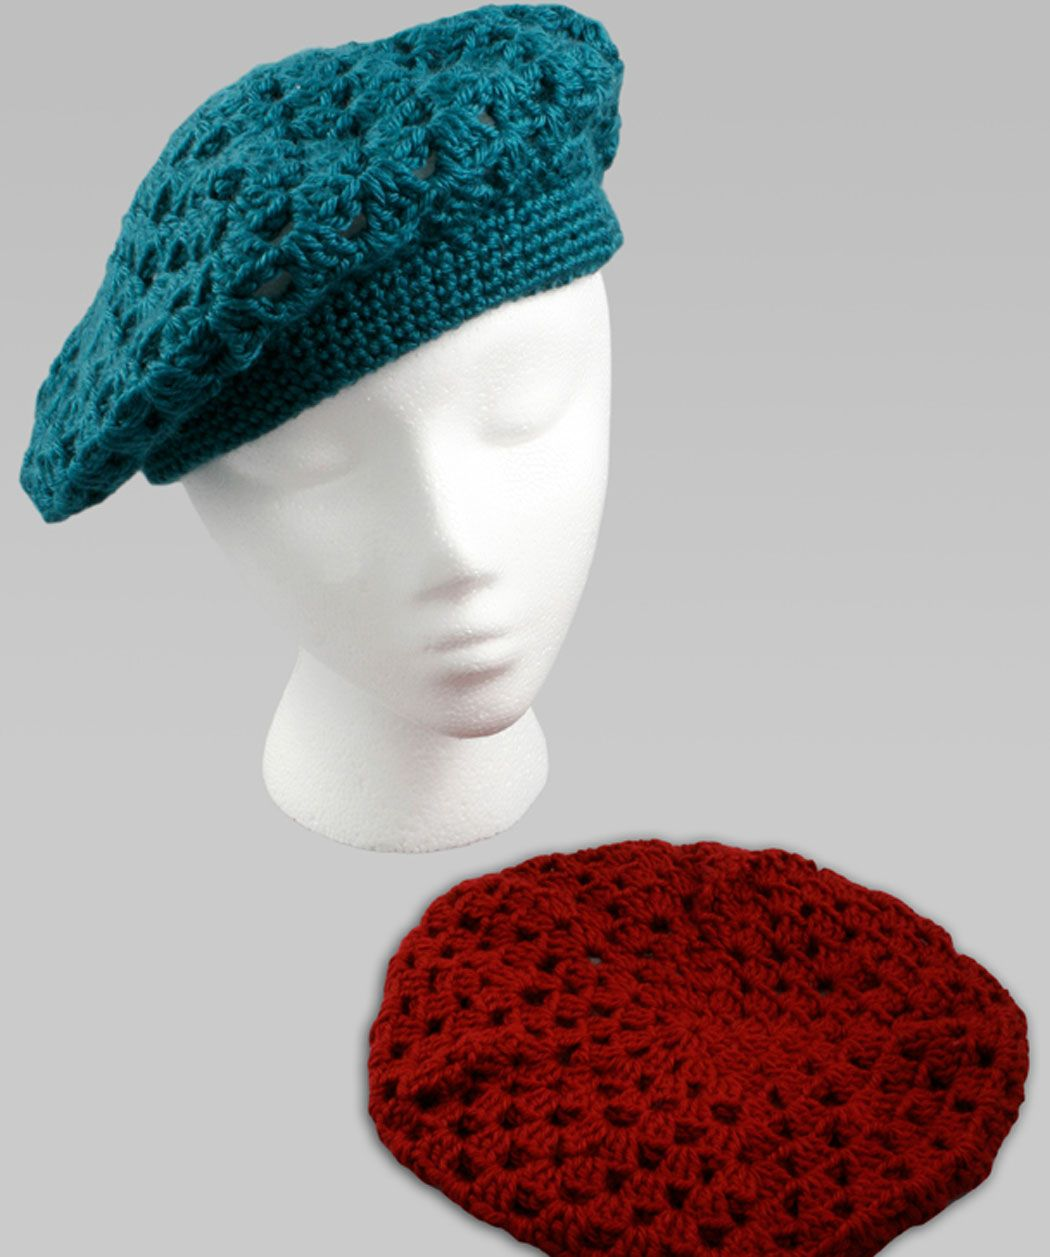 Crochet beret free download printable instructions from redheart crochet beret free download printable instructions from redheart yarn bankloansurffo Image collections